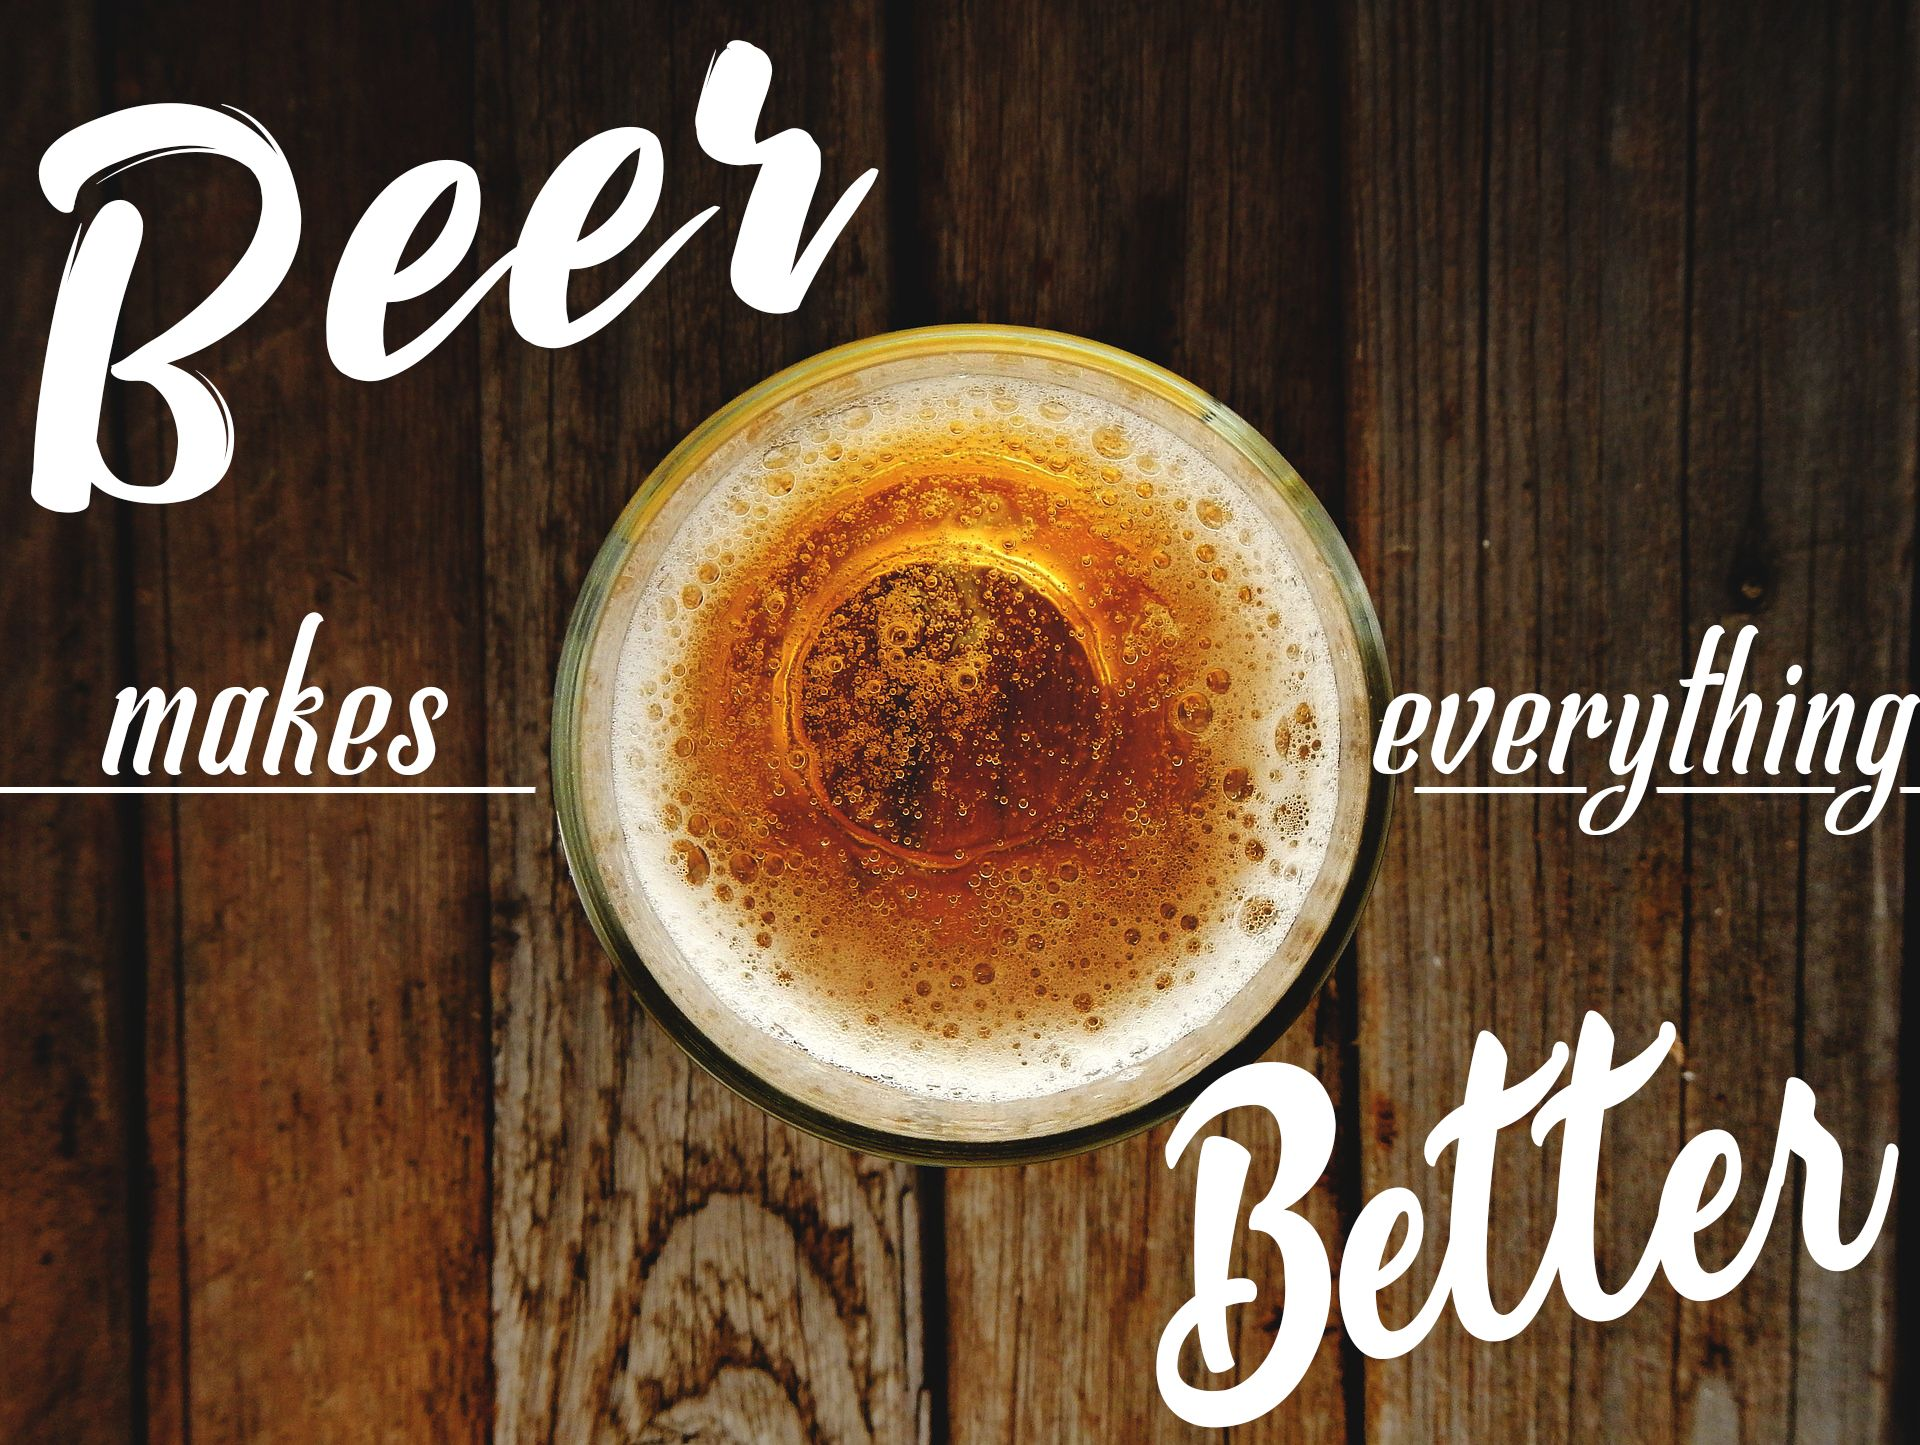 Beer makes everything better stop drinking alcohol